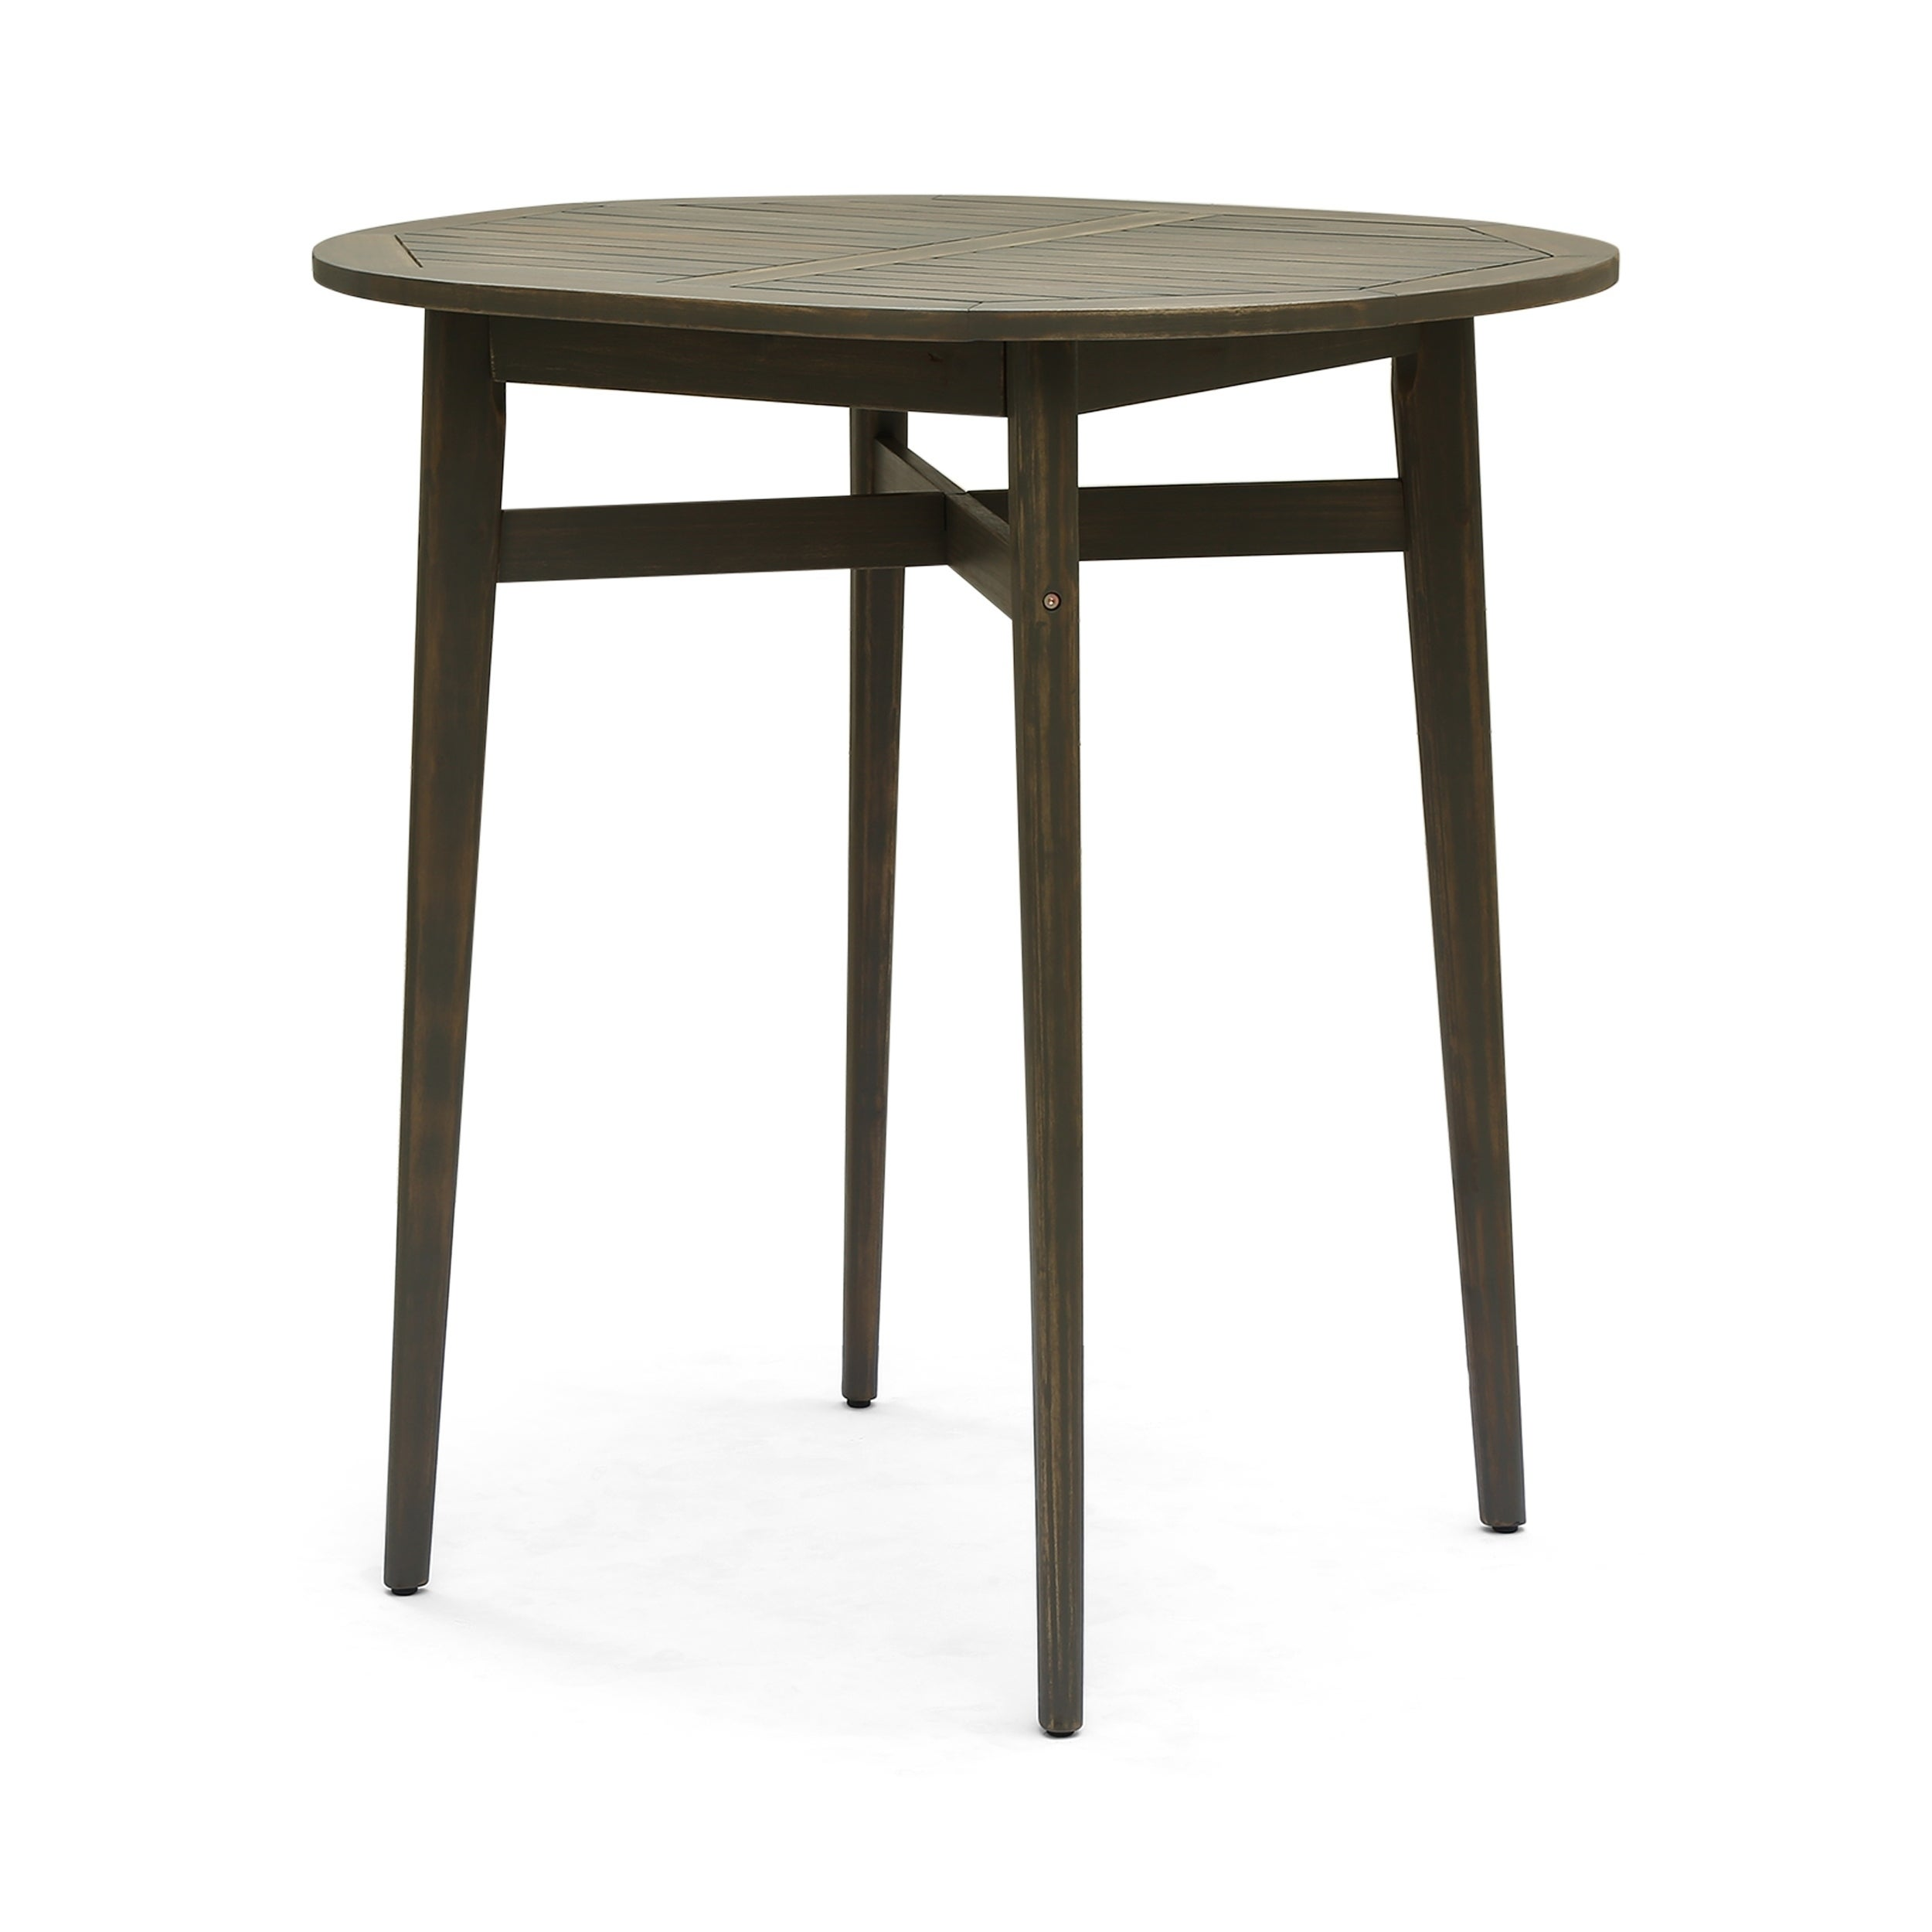 Stamford Outdoor Rustic Acacia Wood Bar Table With Slat Top By Christopher Knight Home